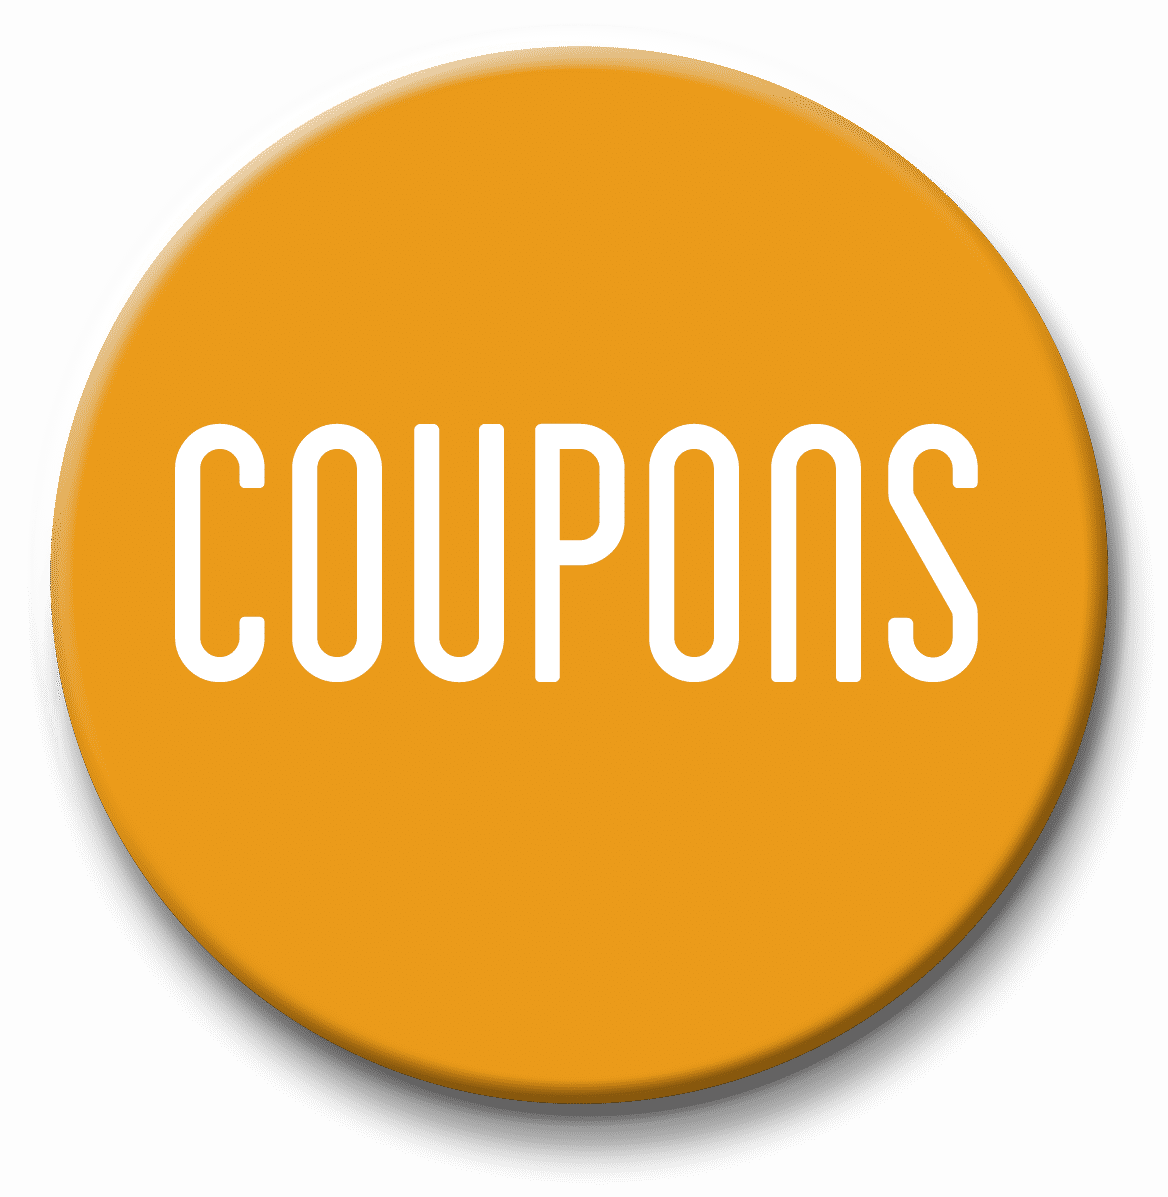 Coupon Shopping 401 A New Way Of Life In Tough Economic Times By Aliexpress Medium